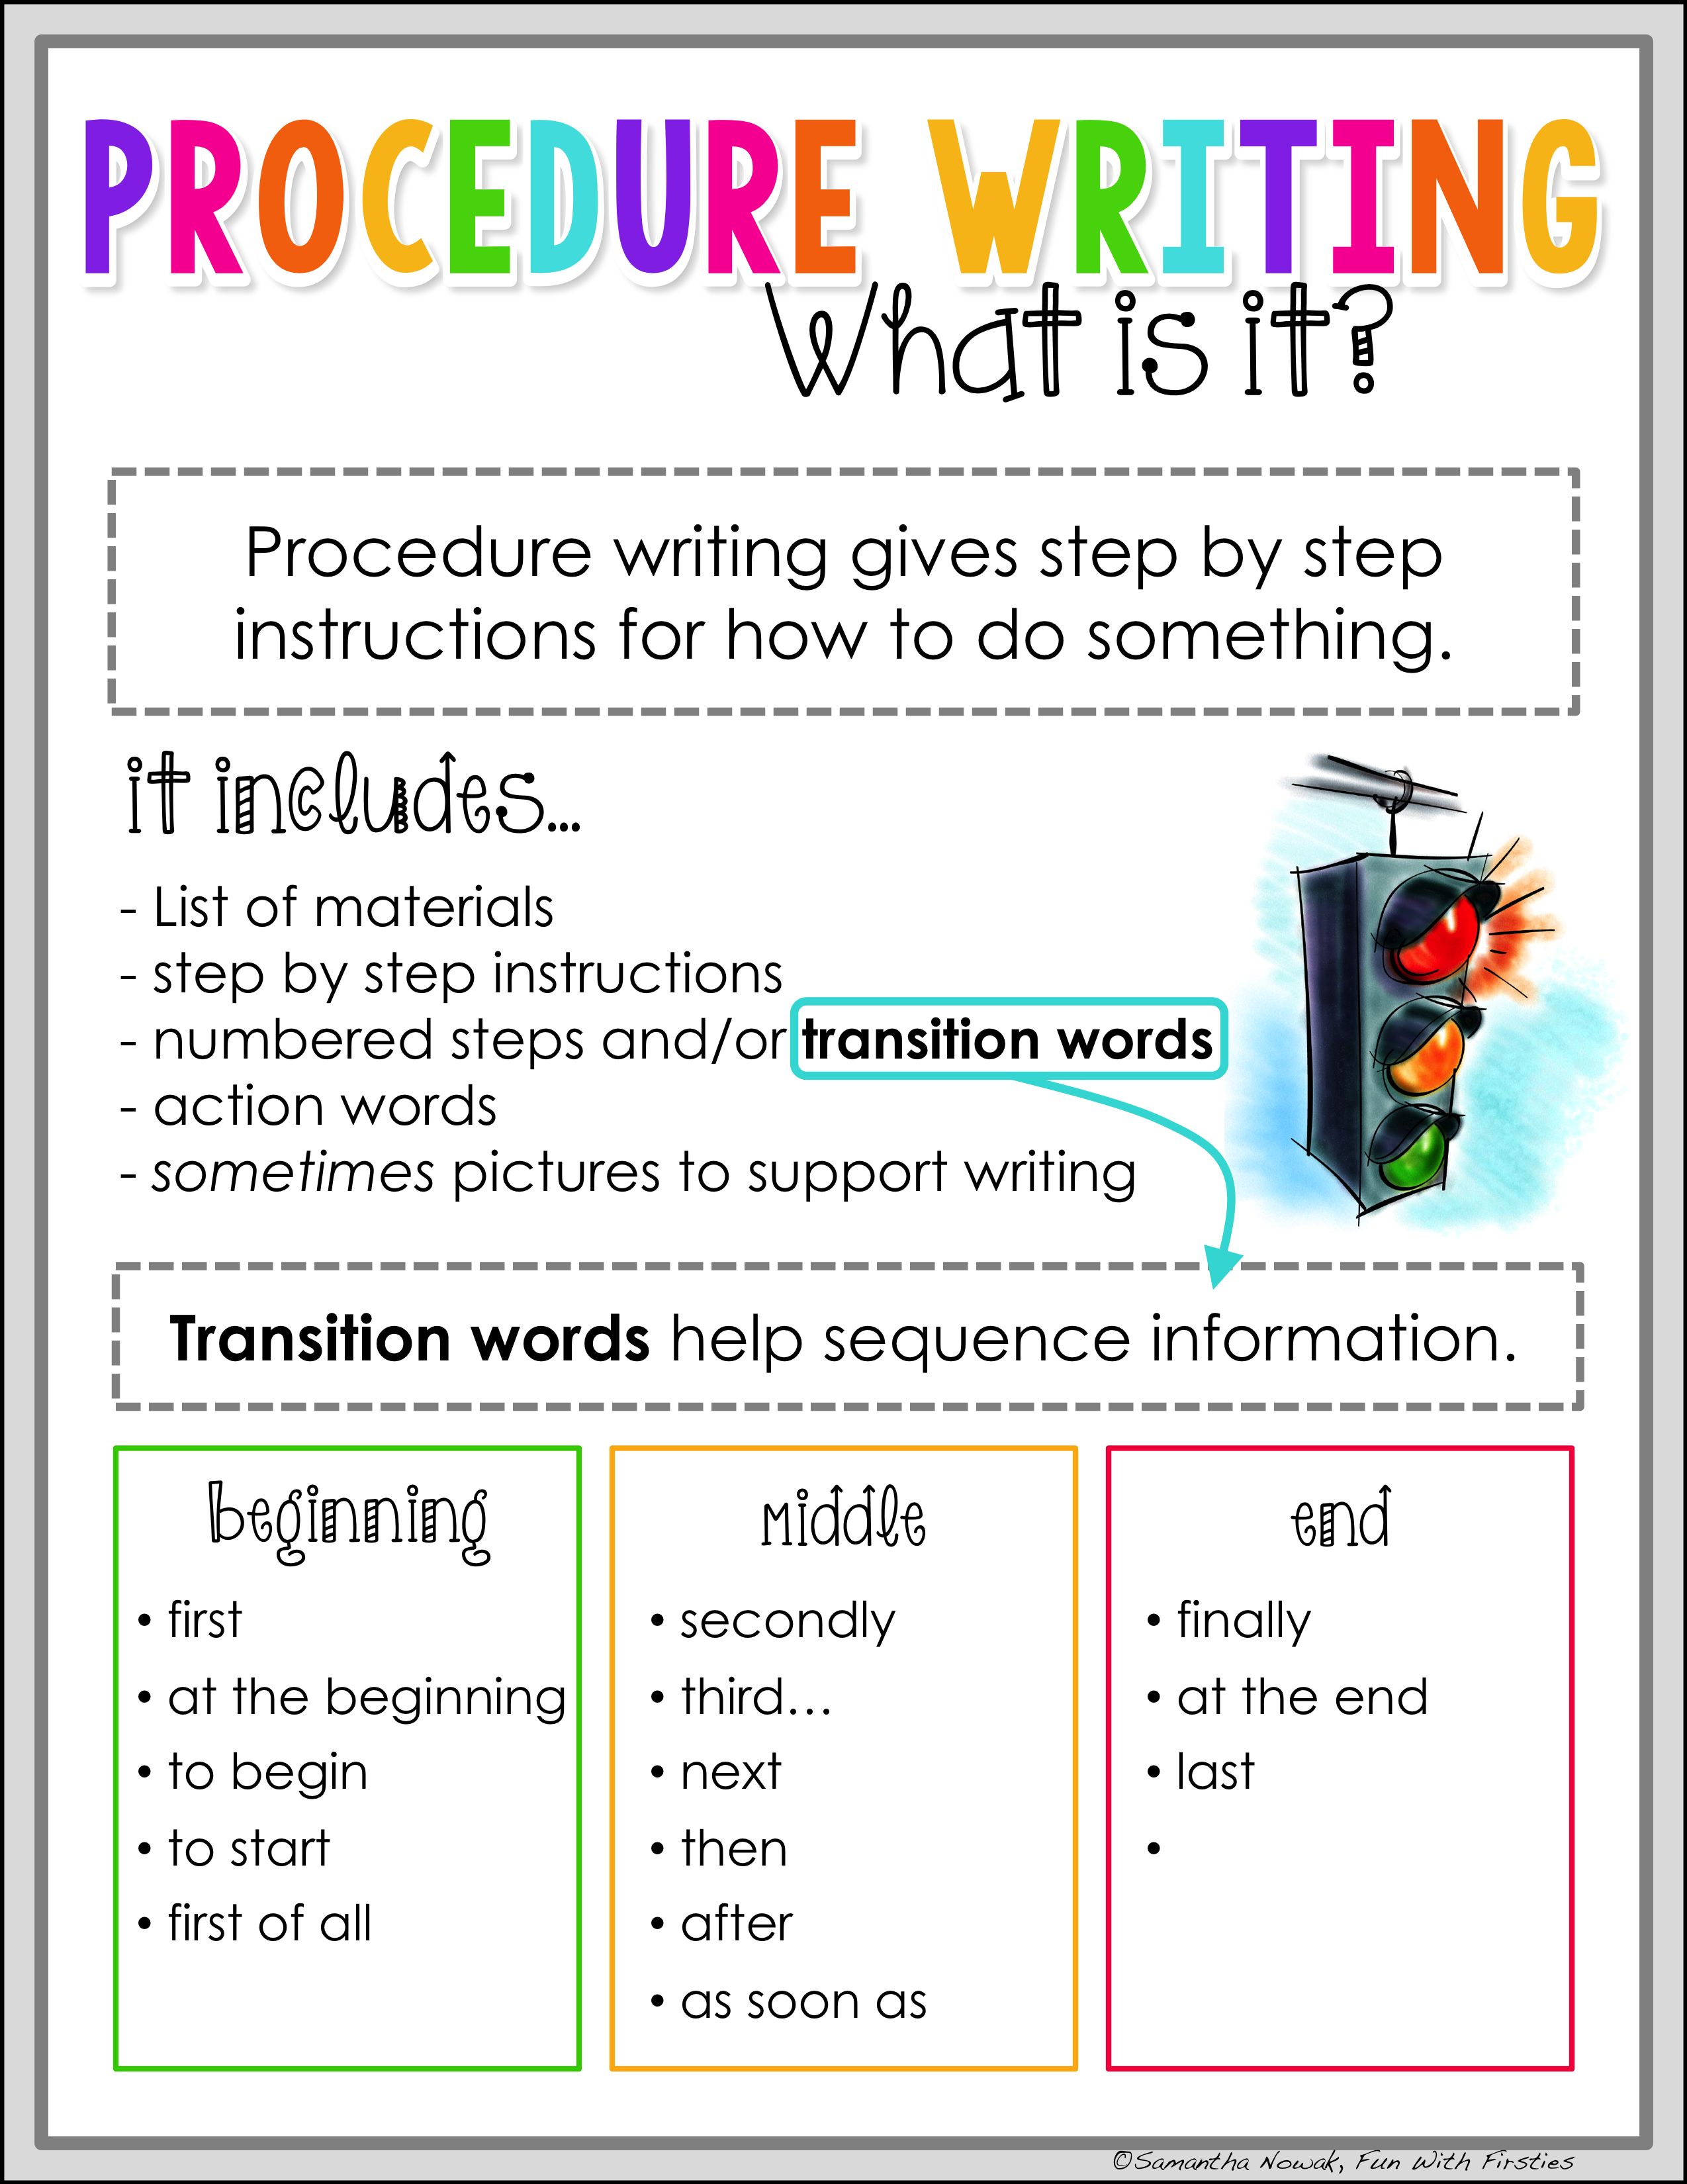 Reading & Writing Procedure Texts in Primary Grades, Part II